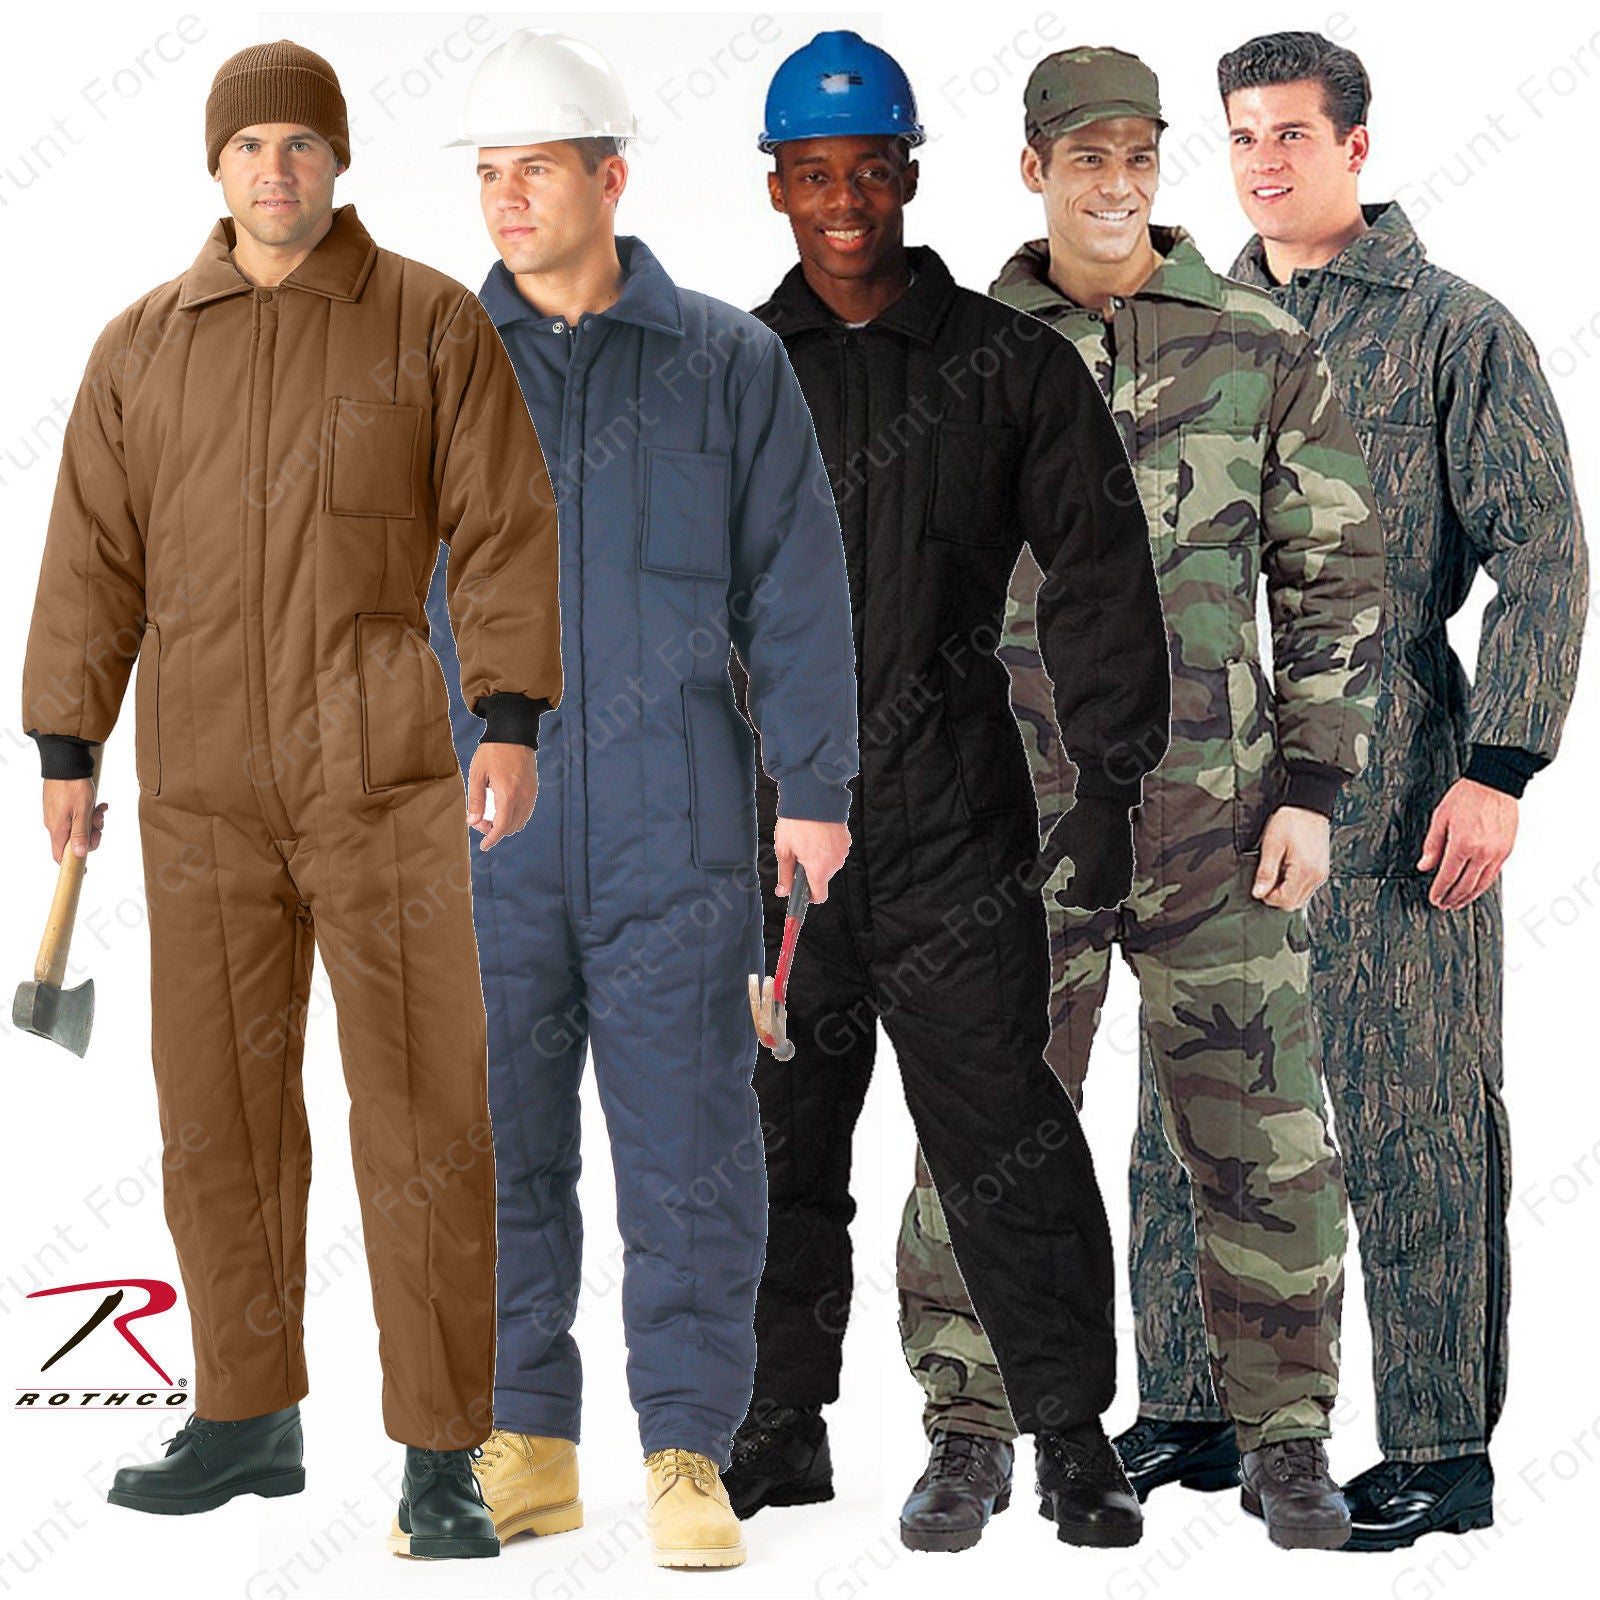 e67aac55d2ccd Rothco Heavyweight Insulated Coveralls - One-Piece Winter Work Jumpsuits  Woodland Camo ...